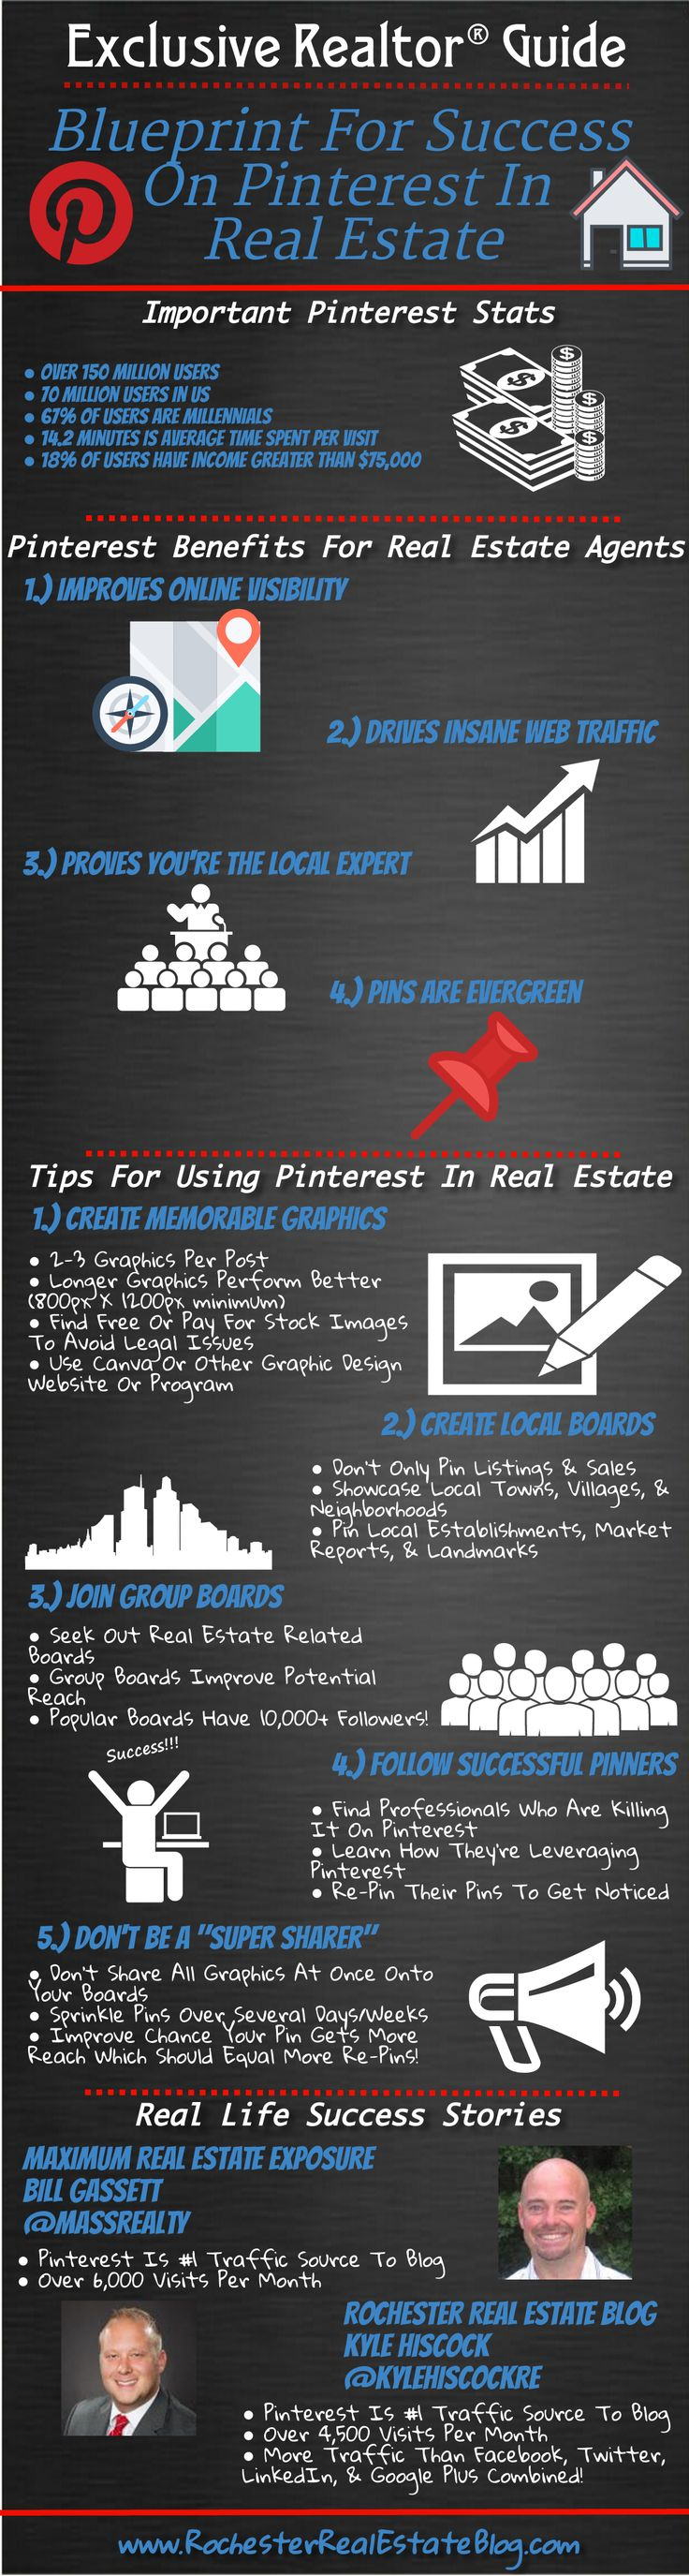 Exclusive Realtor Guide For Crushing It On Pinterest In Real Estate http://www.rochesterrealestateblog.com/how-to-use-pinterest-in-real-estate/